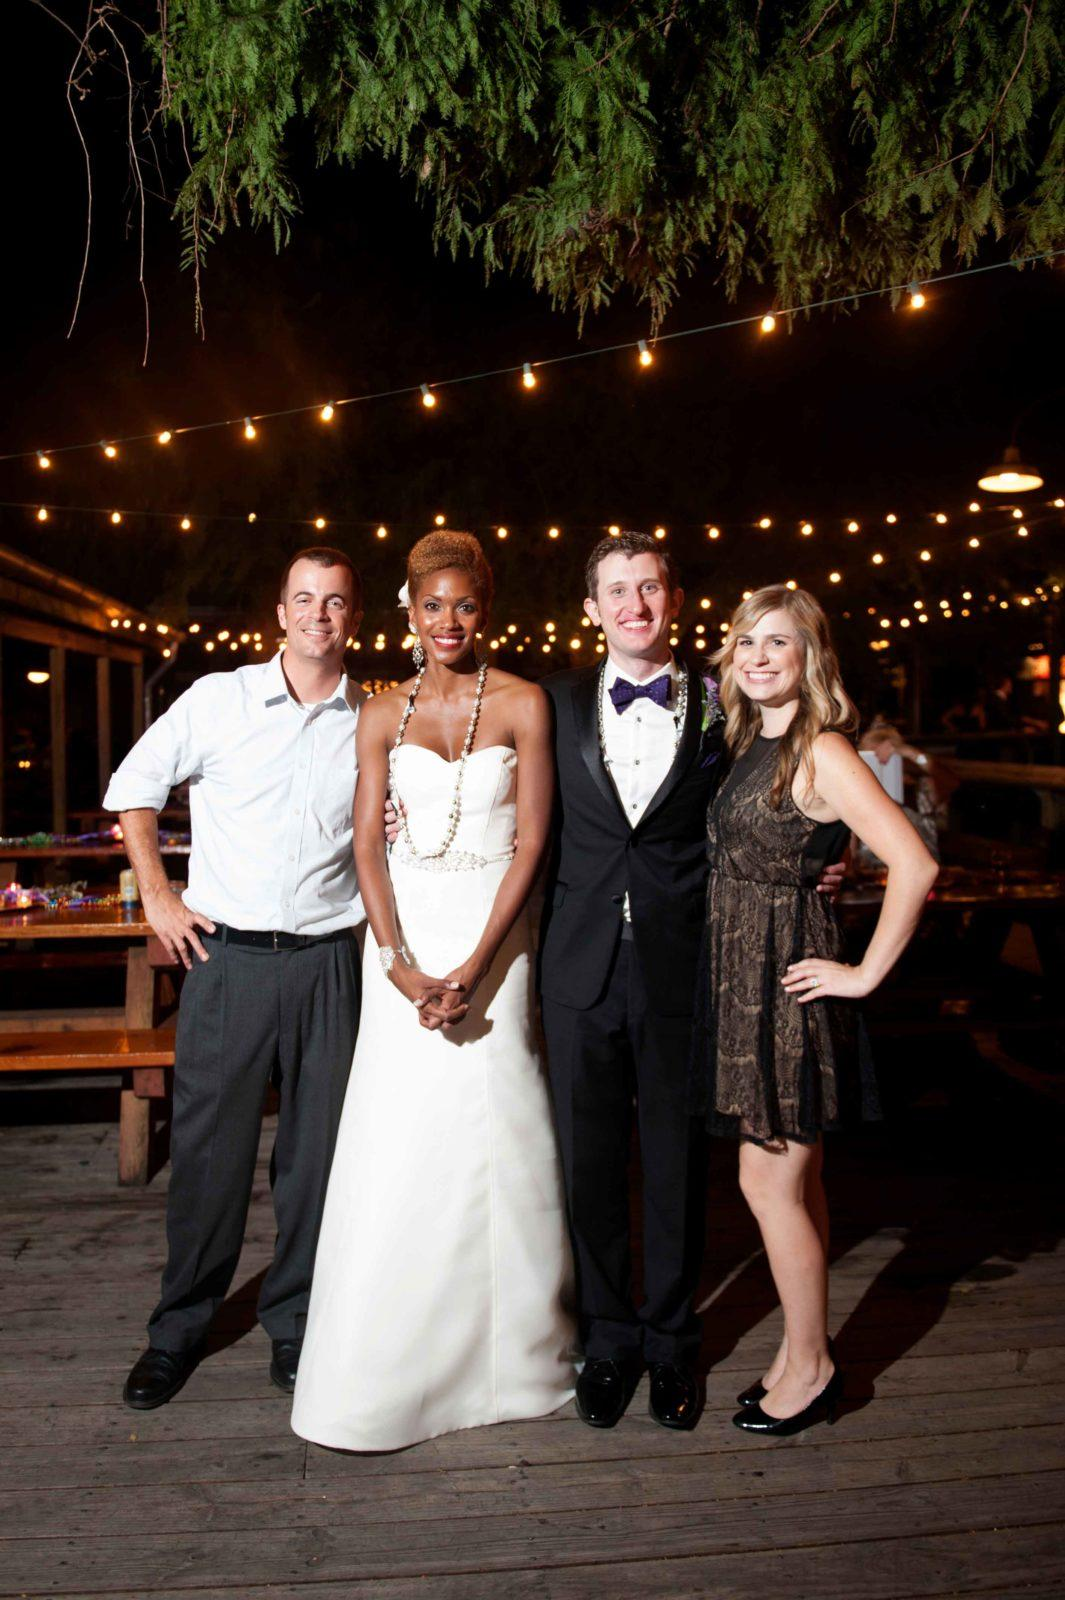 A bride and groom pose with guests outdoors at the Cajun Ballroom. Photo: Lauren Carroll Photography